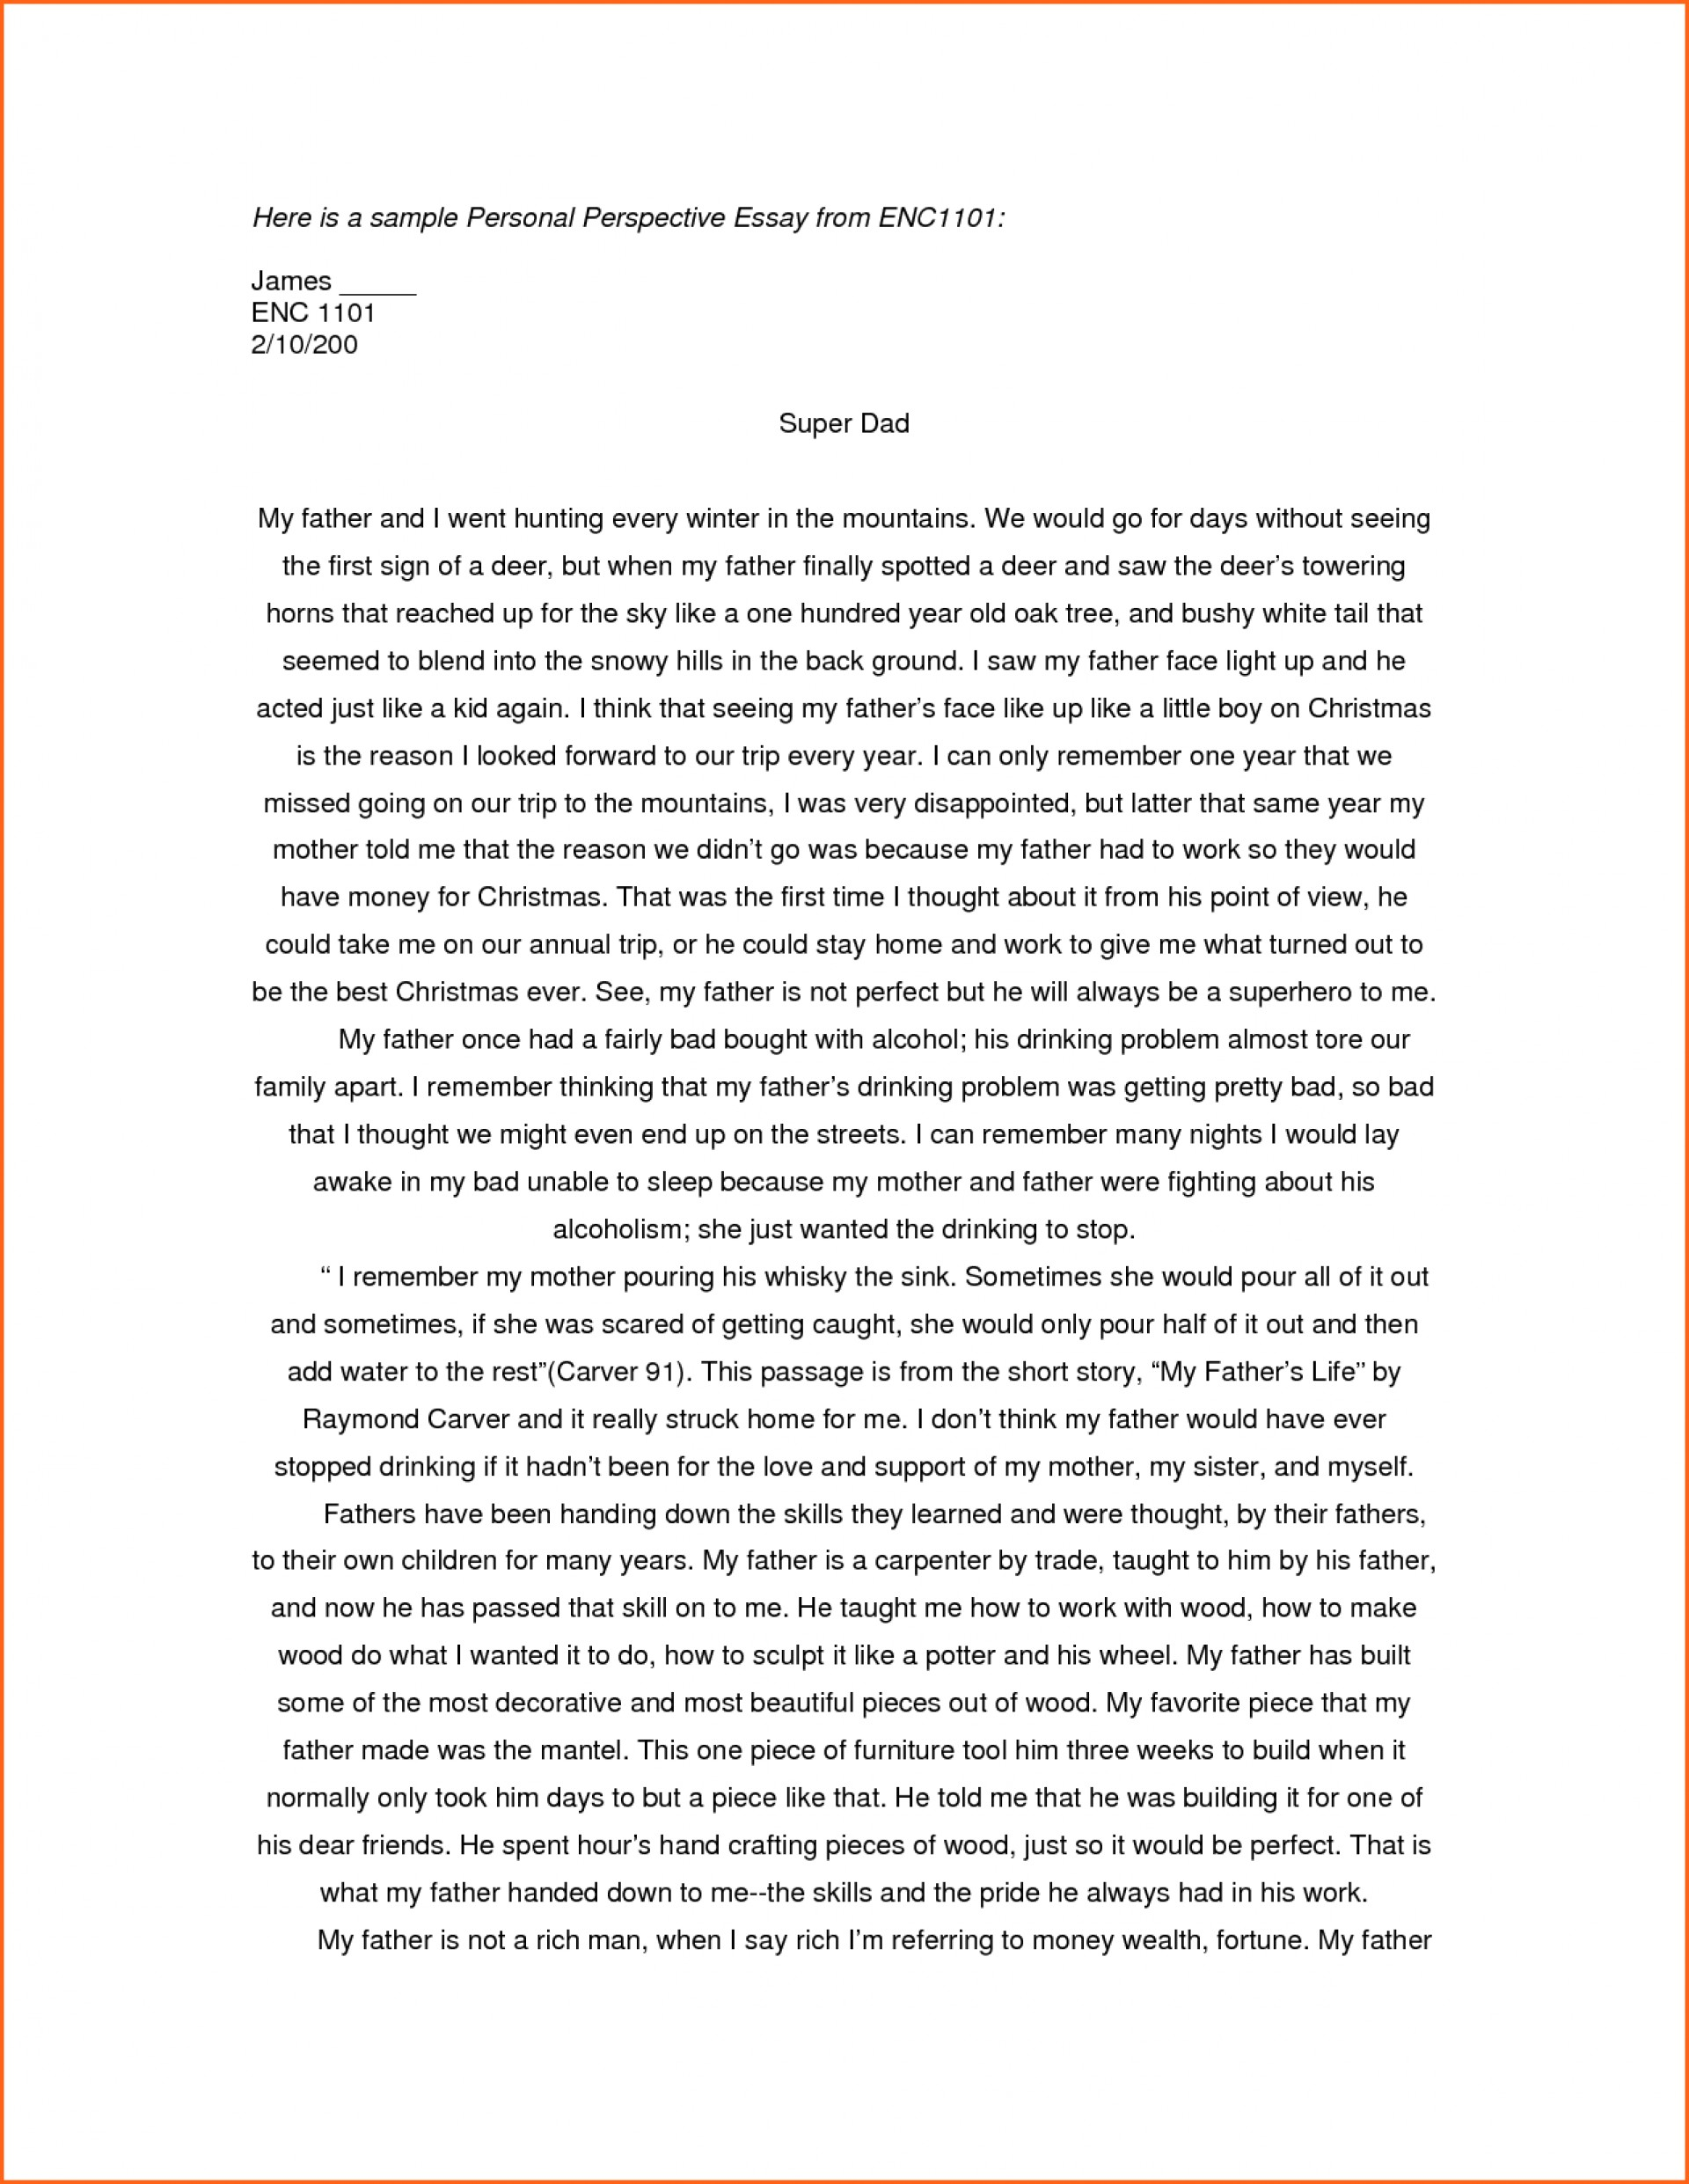 003 Essay Example Examples Of Personal Essays For College Applications L Stupendous Writing Prompts Ks2 Structure Outline Format Scholarships 1920